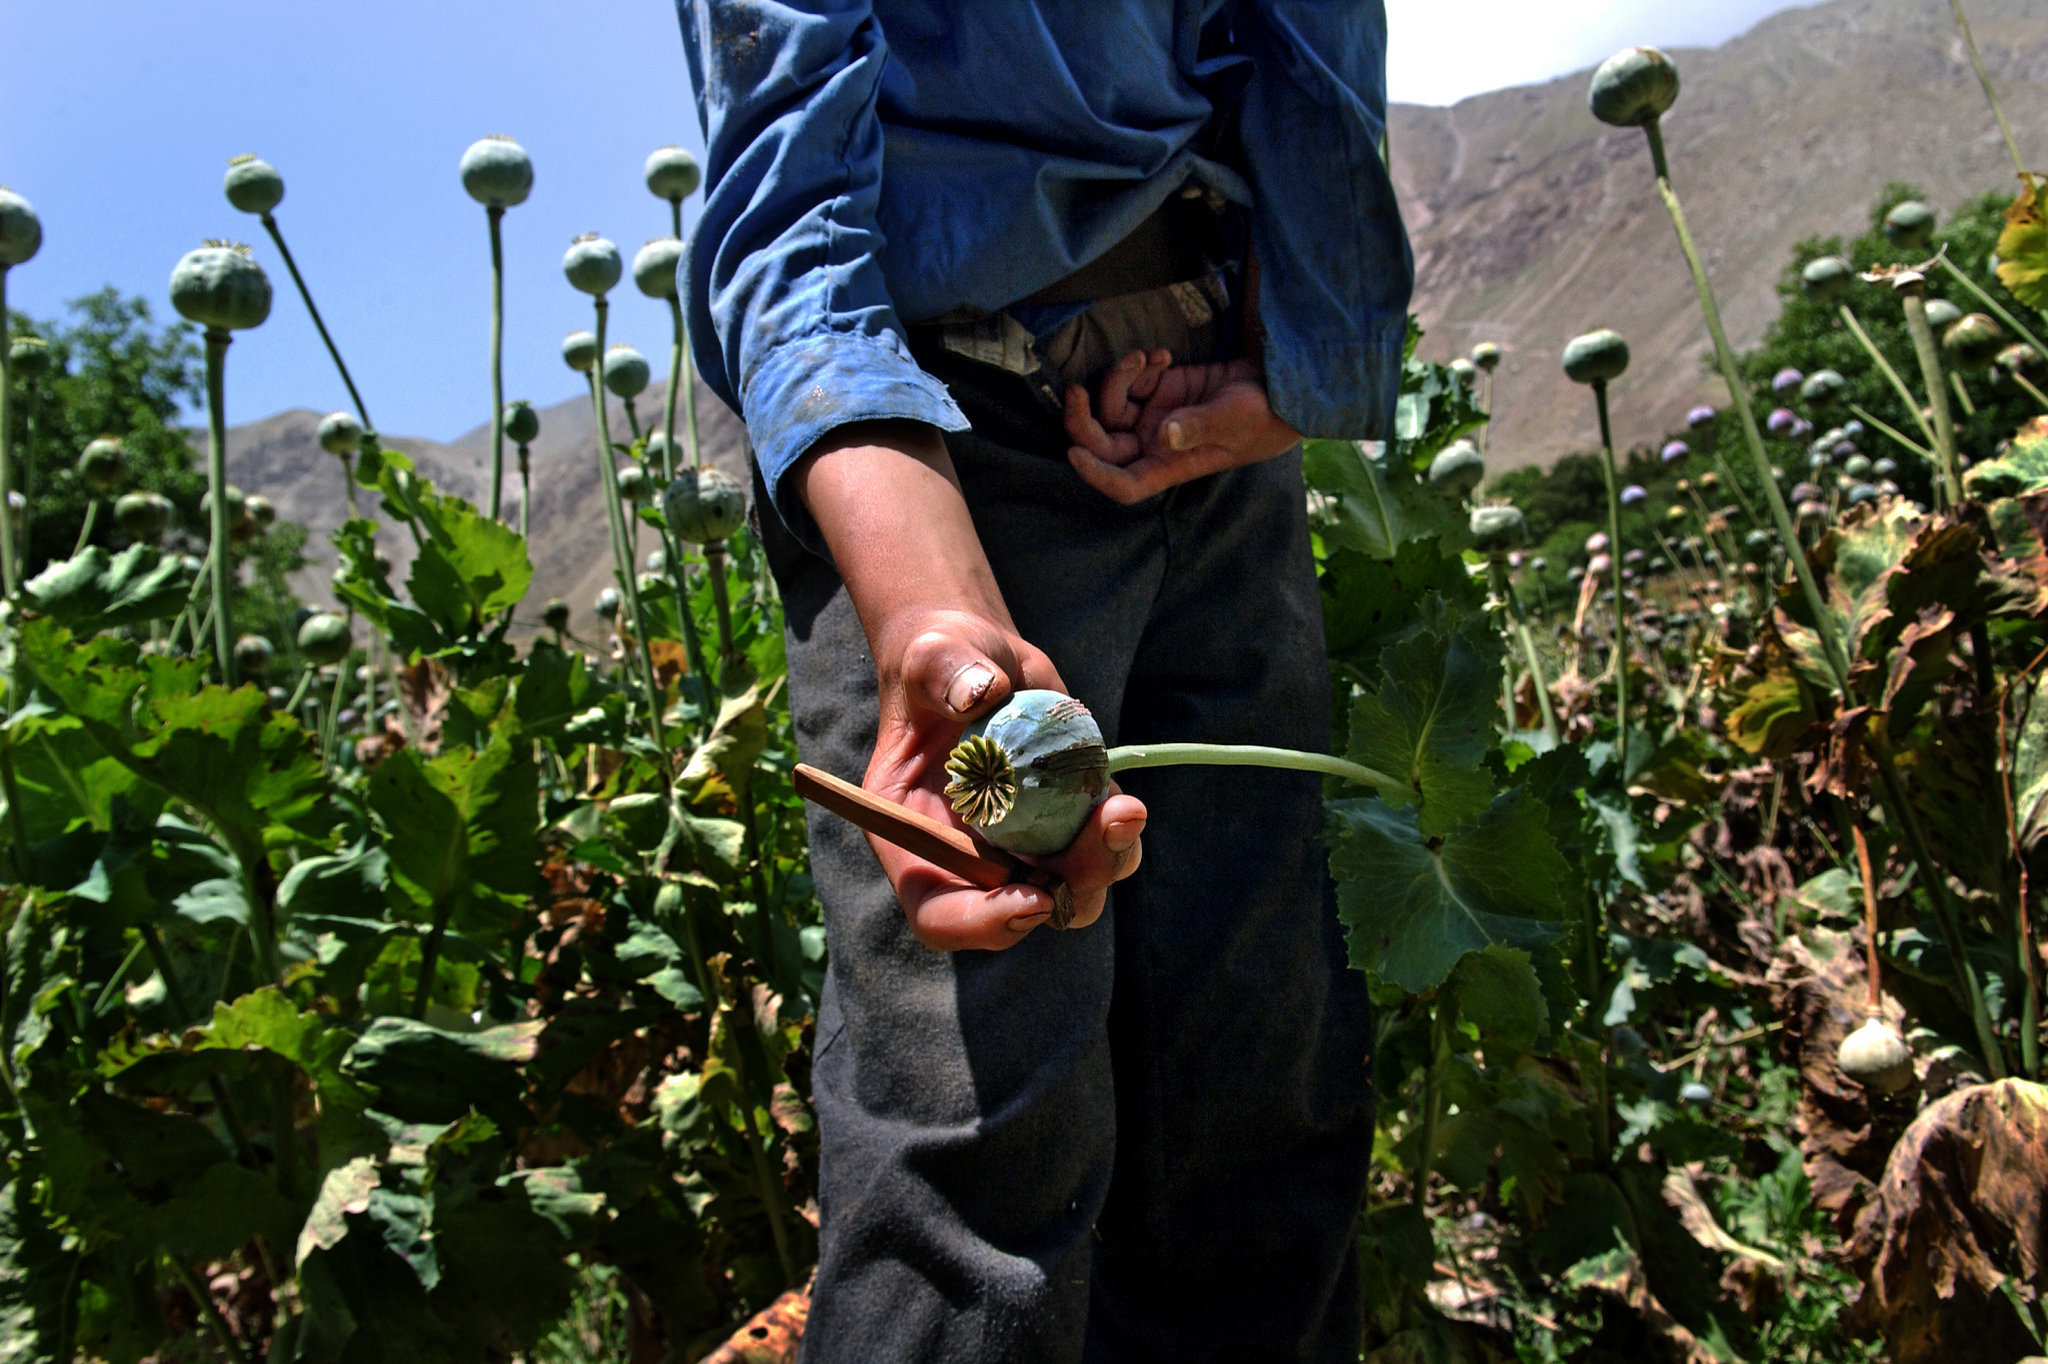 Trapped in the trade : newer, higher yielding opium poppies - with bigger bulbs that mature faster and produce more resin using less water - just strengthen the financial incentives for Afghan farmers to grow opium, which can earn them 12 times as much as conventional crops.